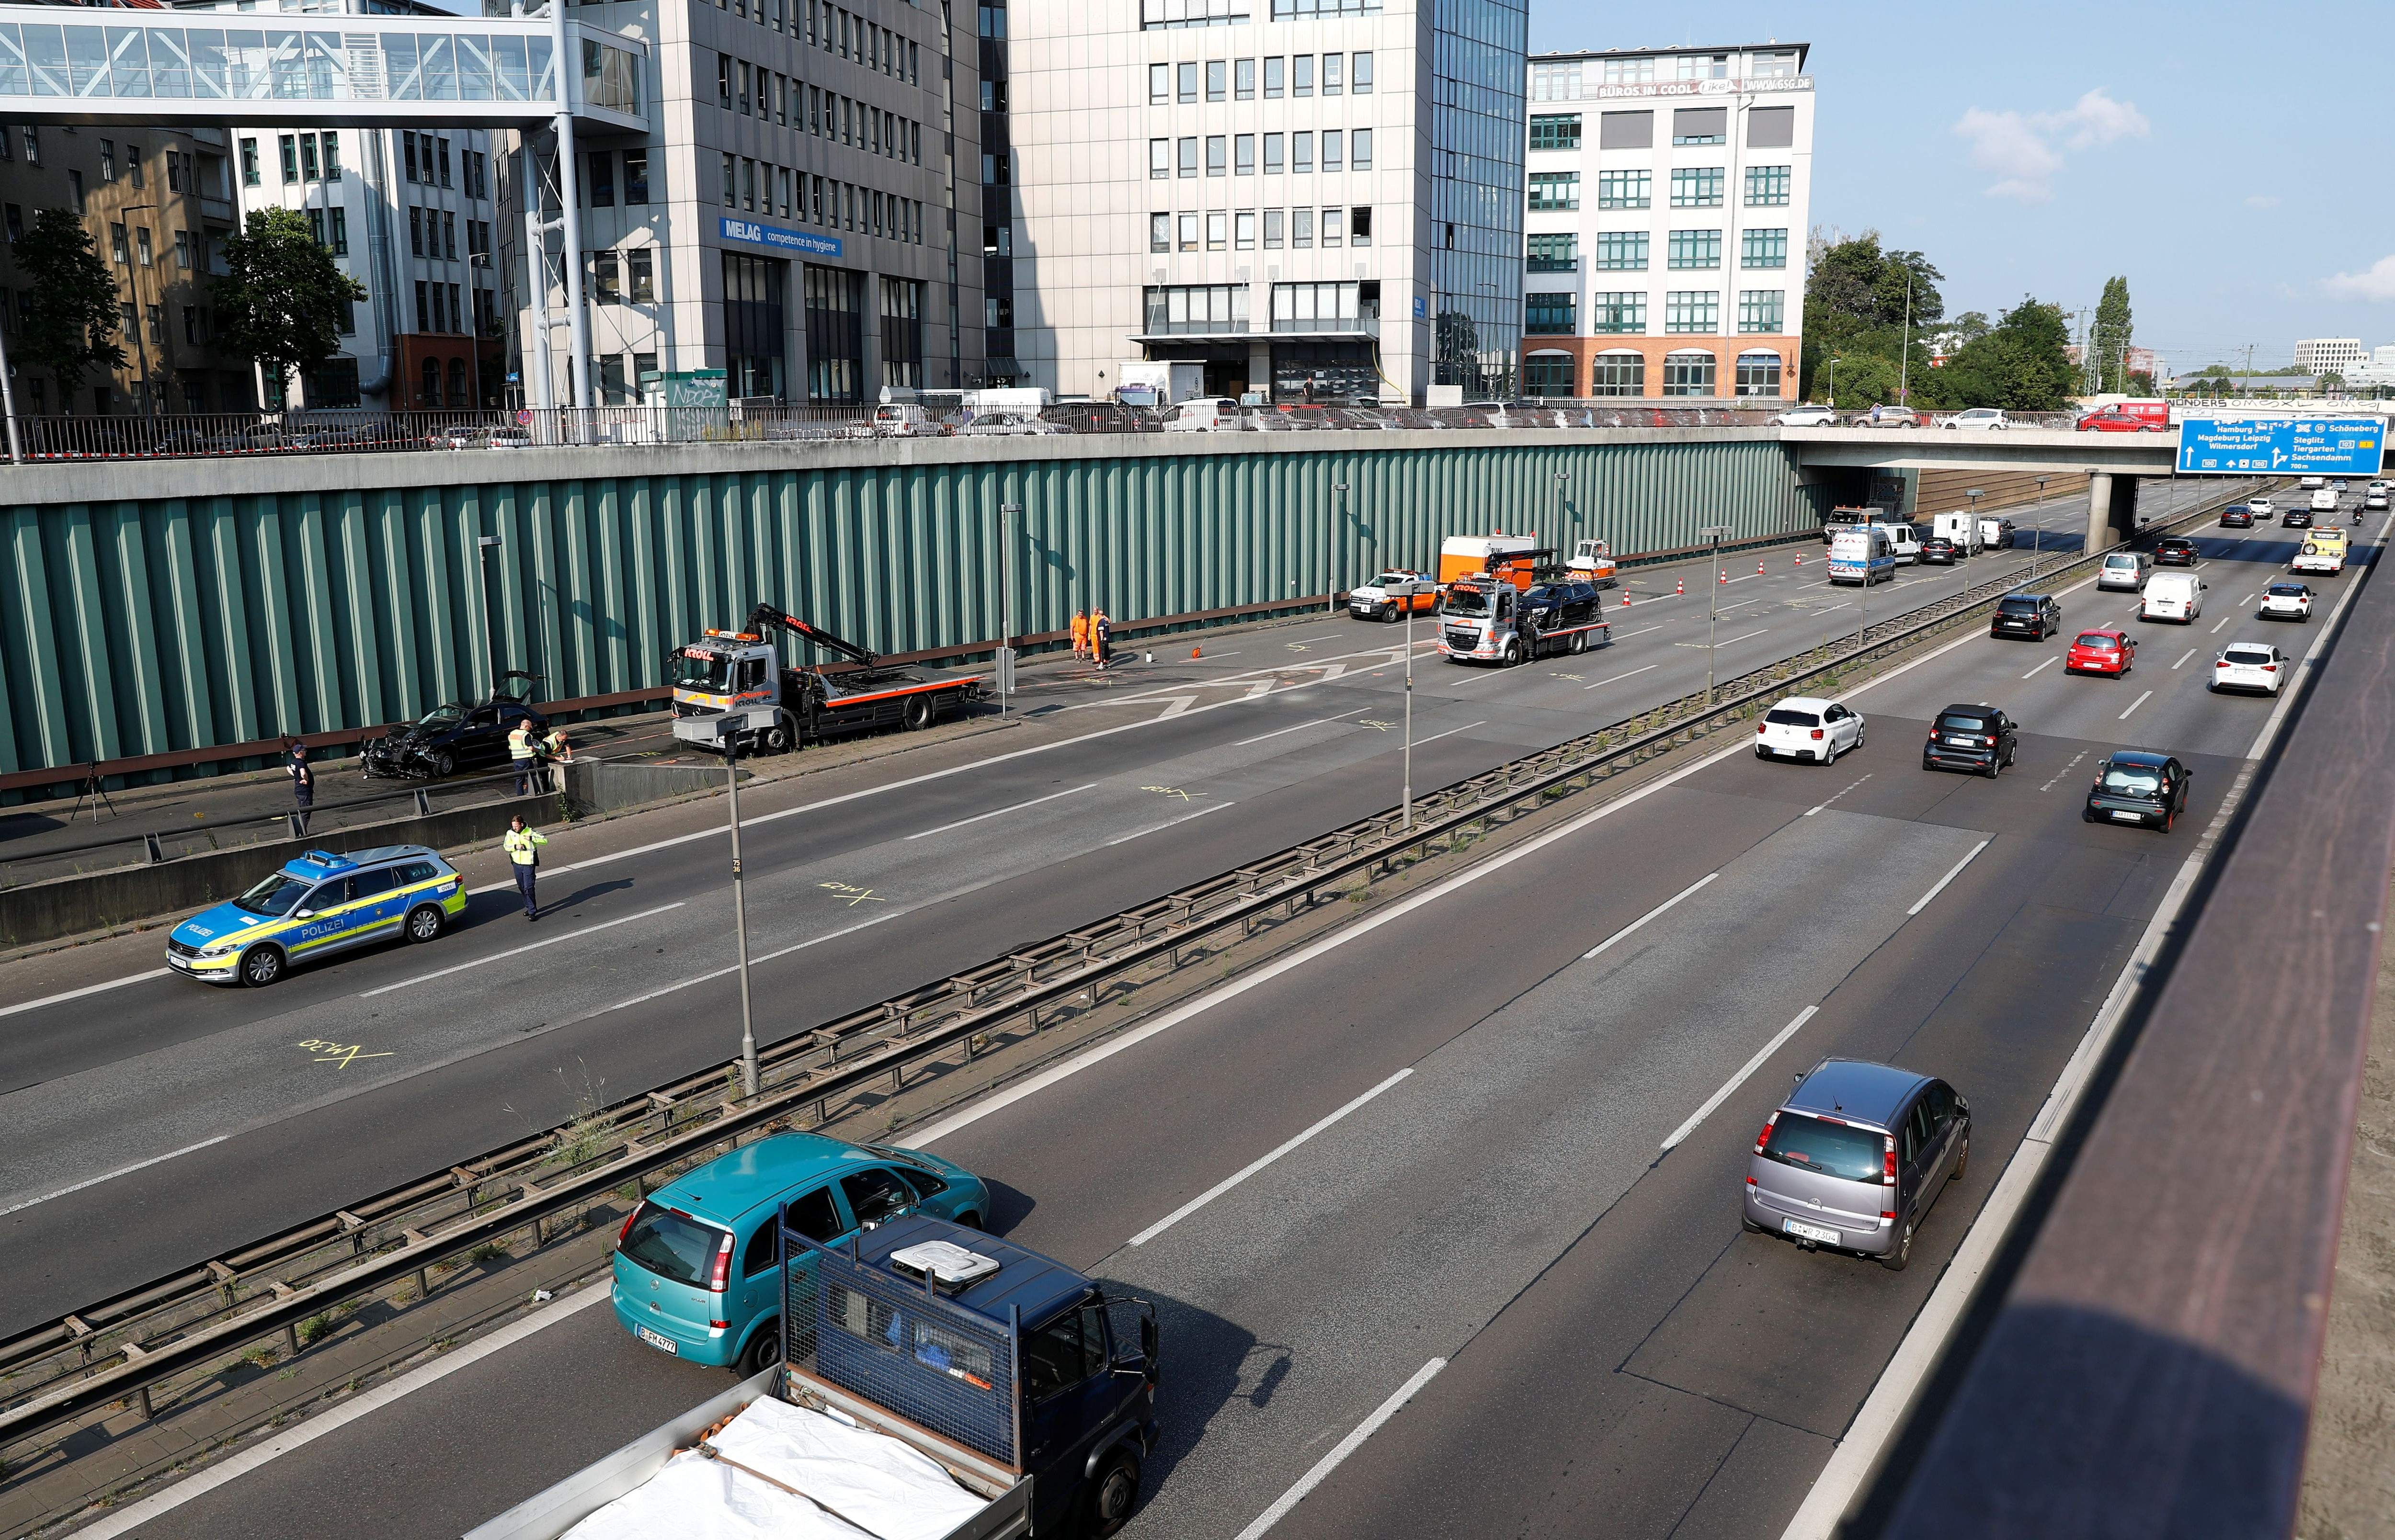 General view of the highway where the attack took place (Reuters)